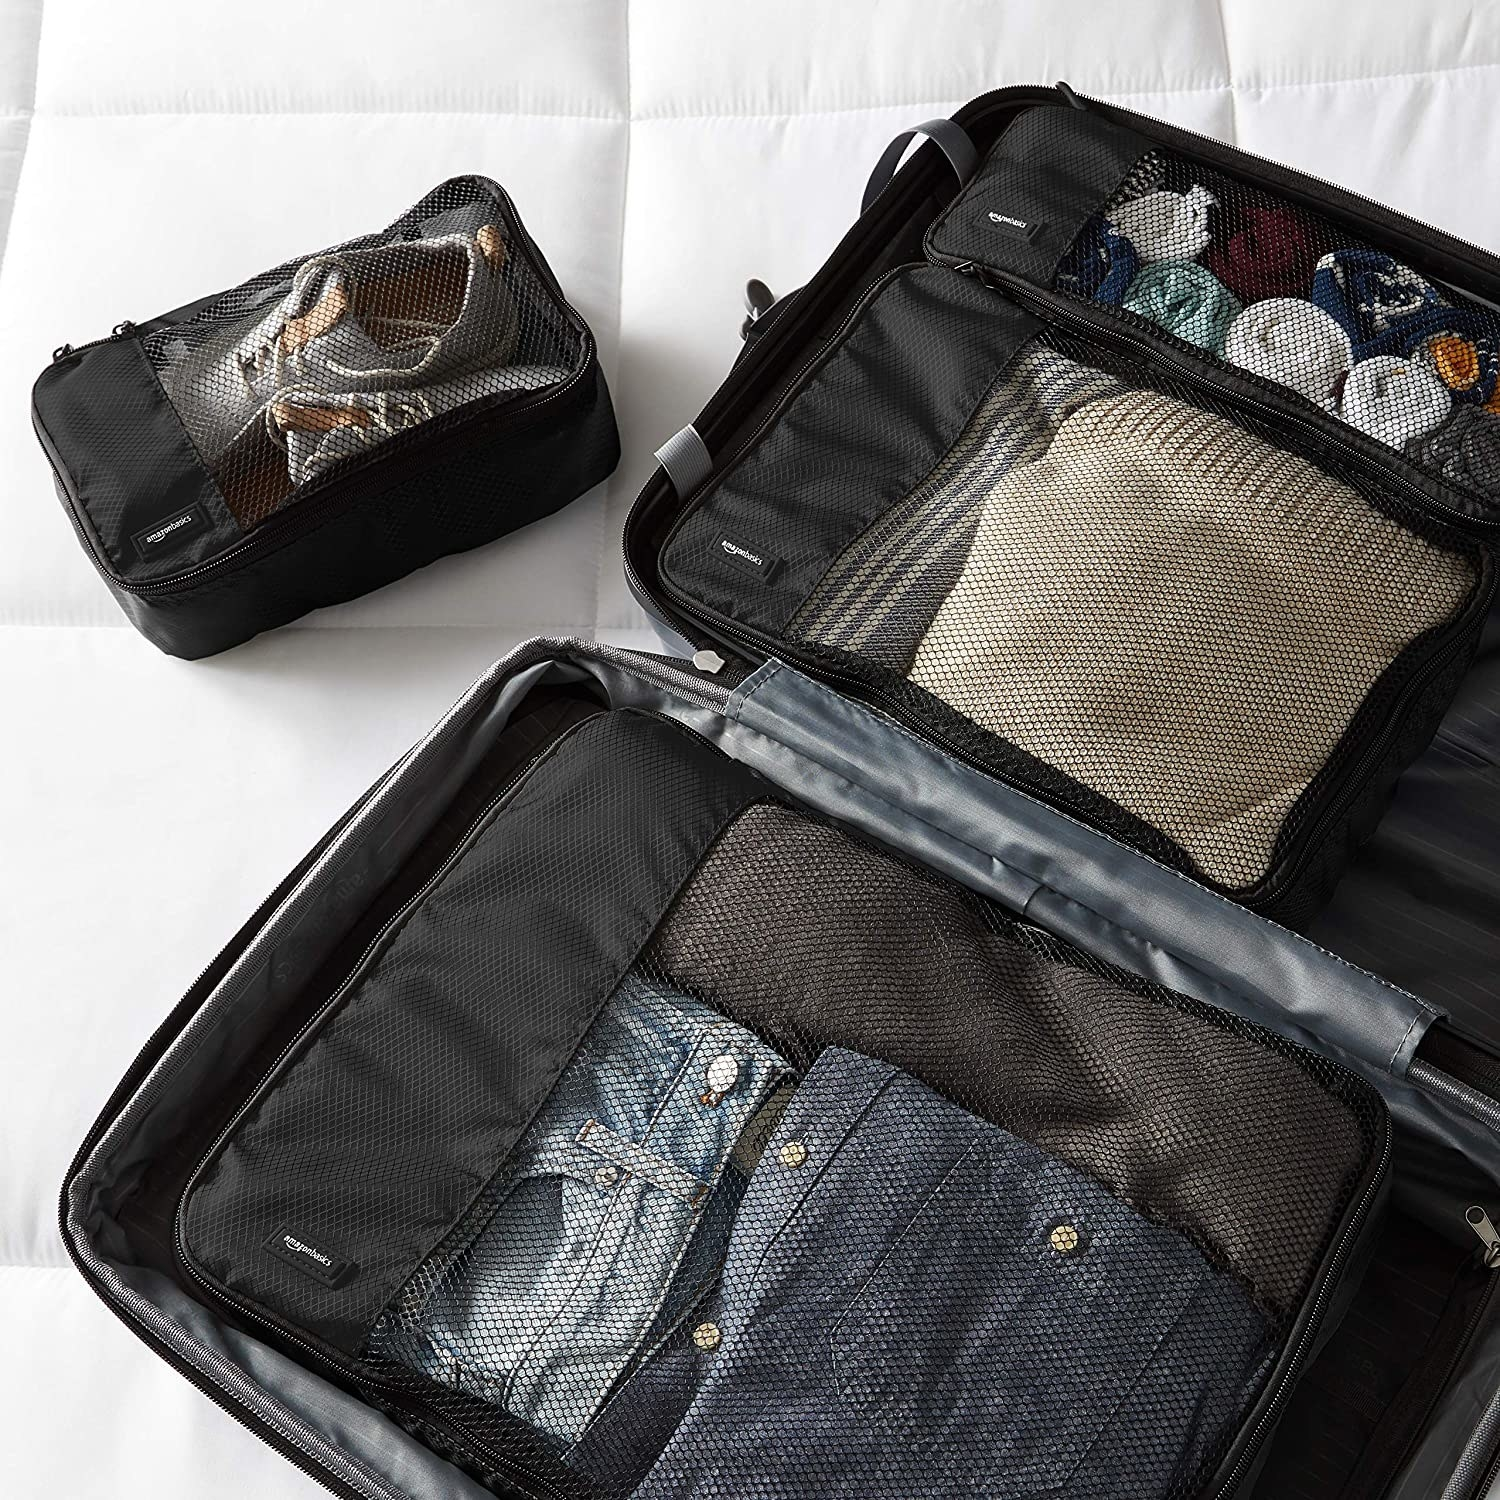 Packing cubes with clothes pictured inside a suitcase.